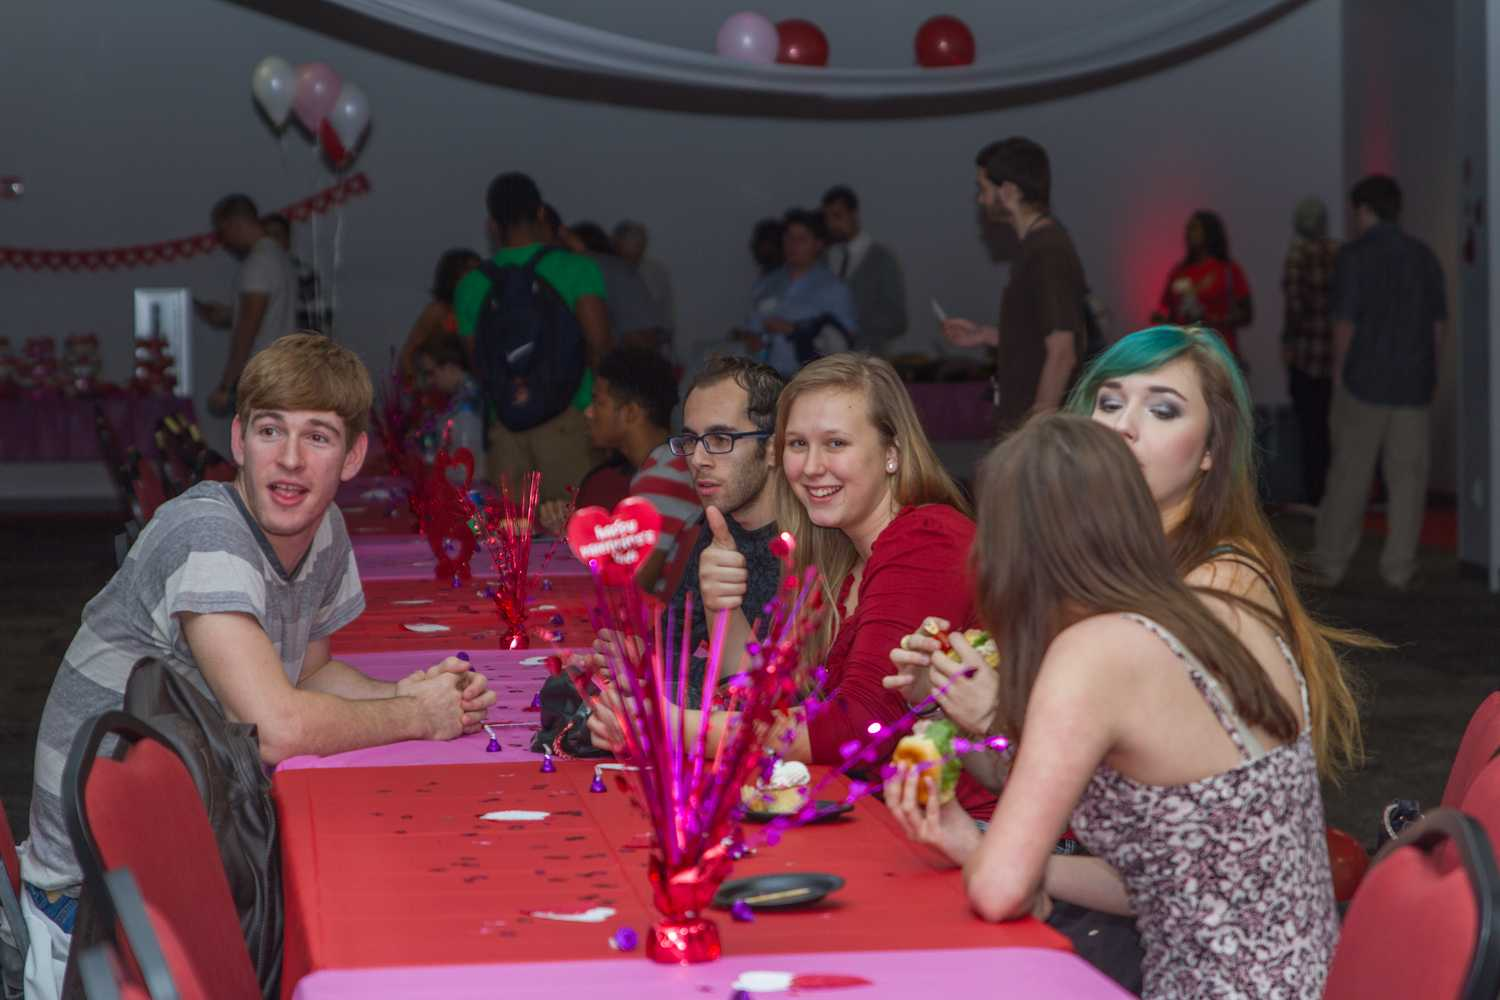 speed dating durban Smart date is a speed dating events company based in south africa where dates happen smart and fast - 5 minutes to meet the potential love of your life filled with fun, friends and love, smartdate has an event for you.